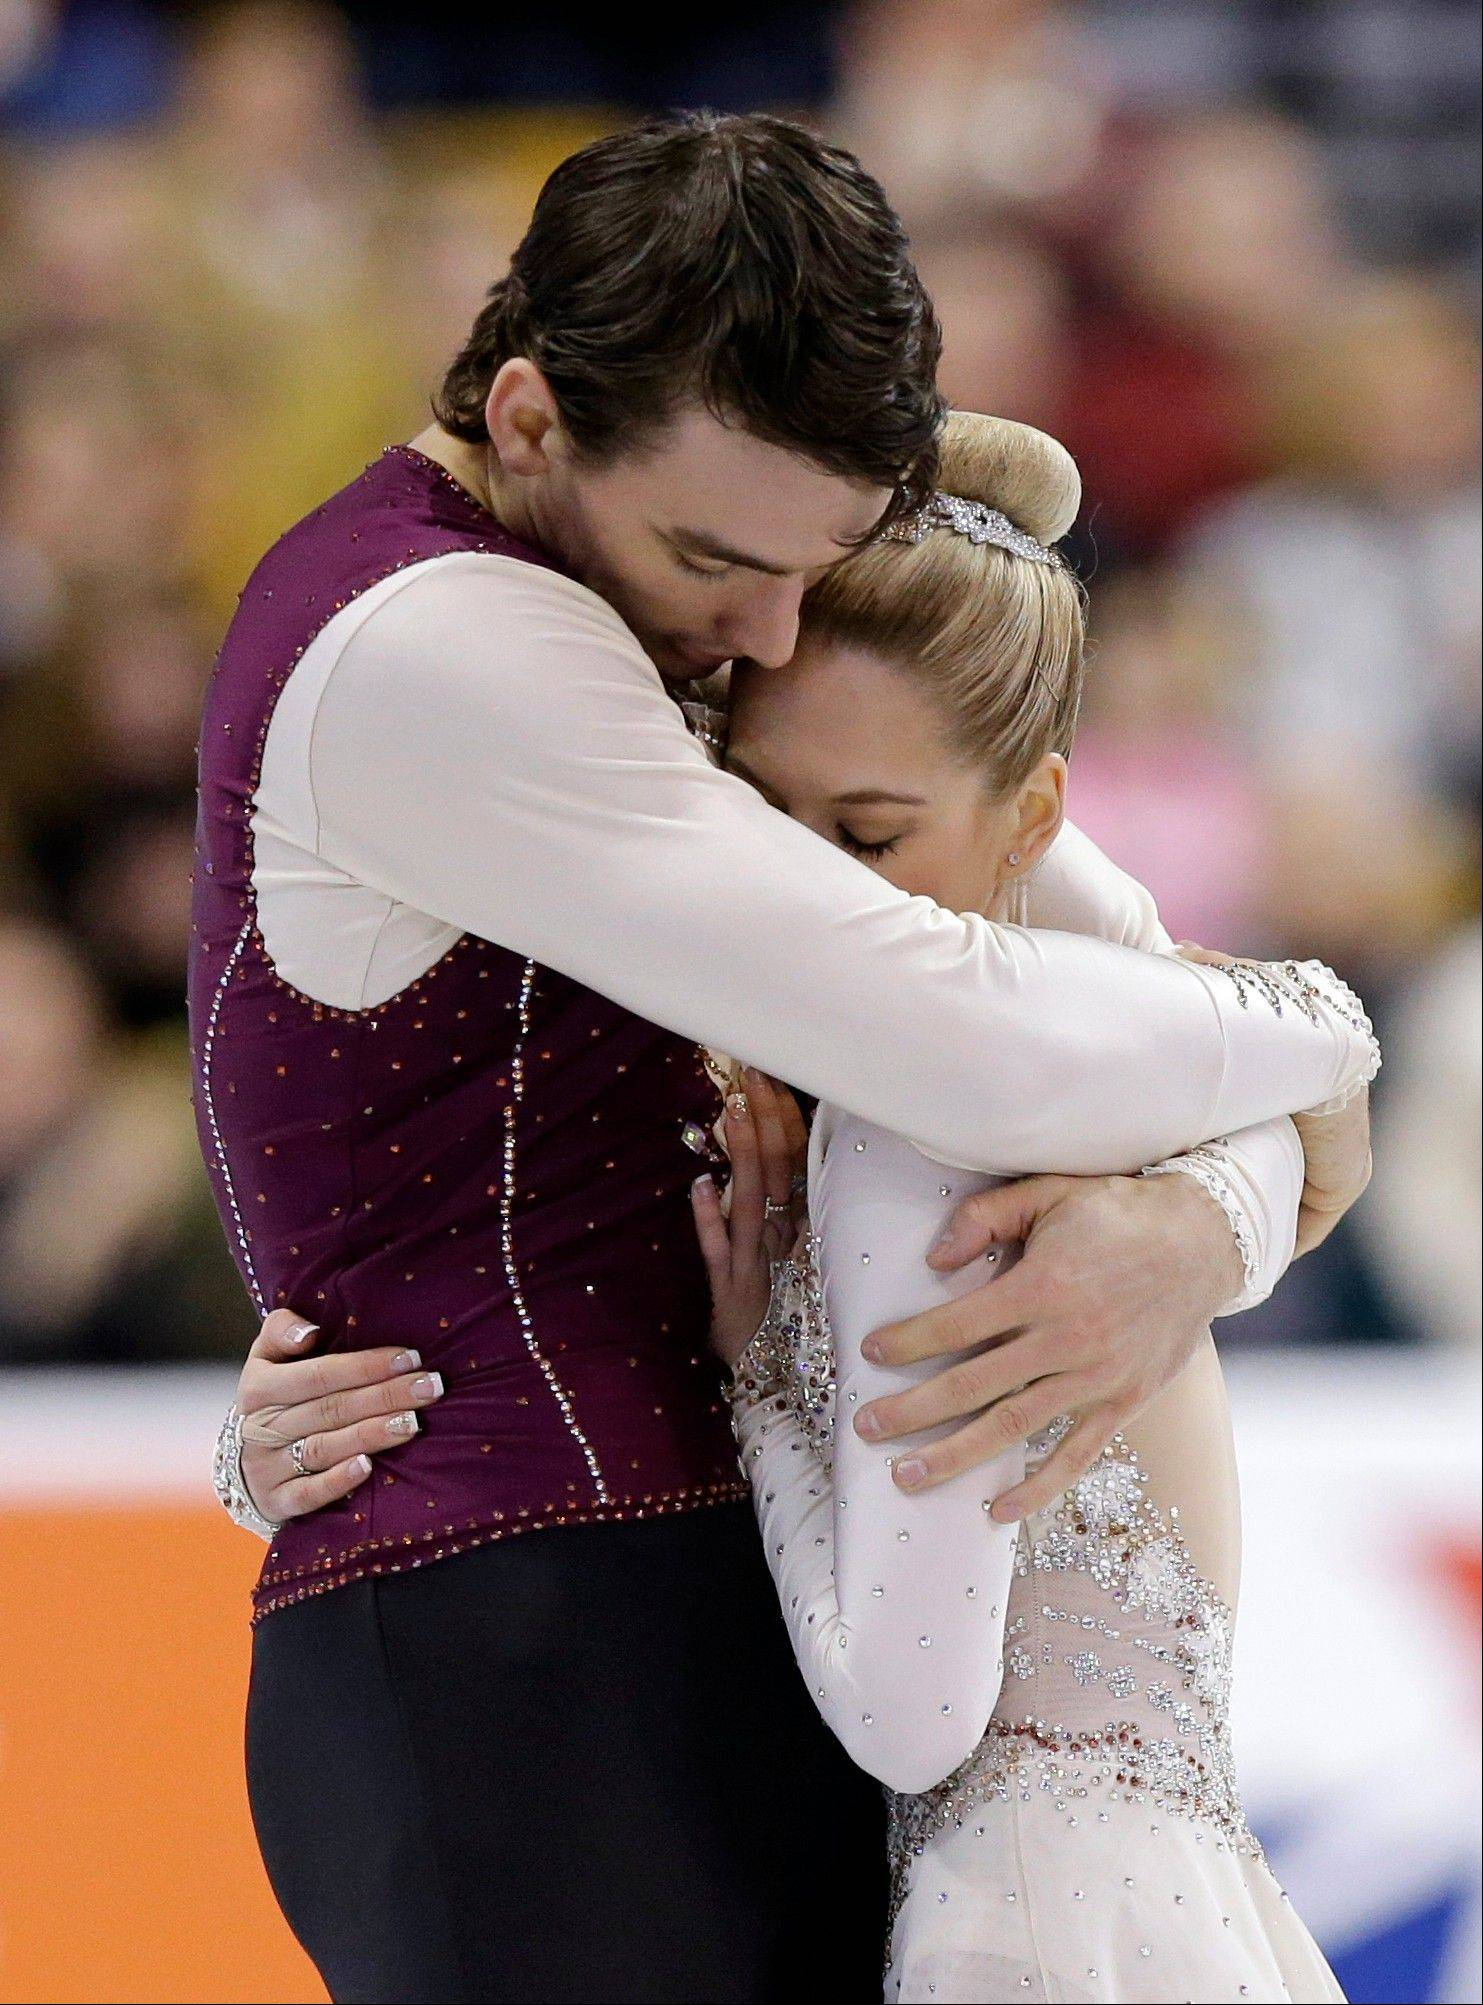 Alexa Scimeca of Addison and Christopher Knierim hug after skating during the pairs free skate at the U.S. Figure Skating Championships Saturday.